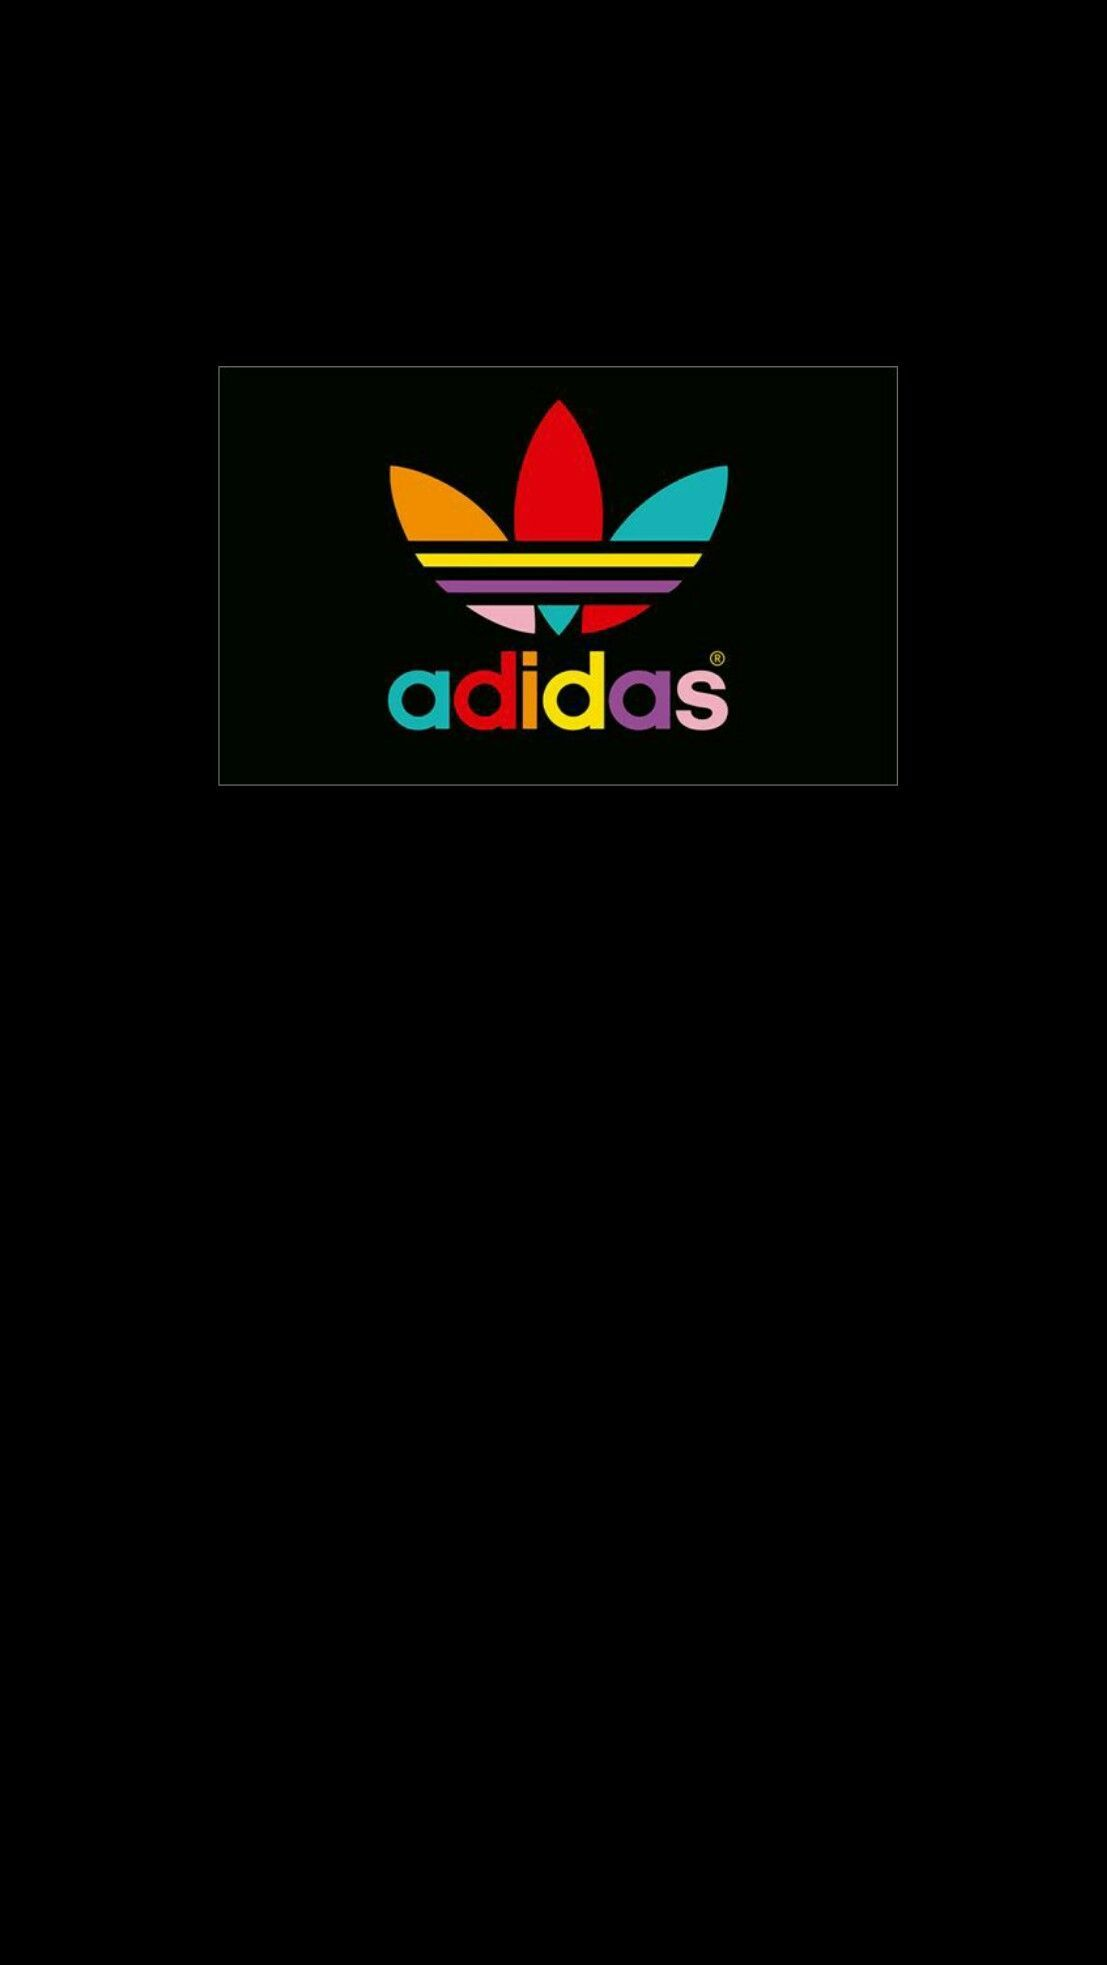 Cute Adidas Camouflage Wallpaper Iphone Android From I Pinimg